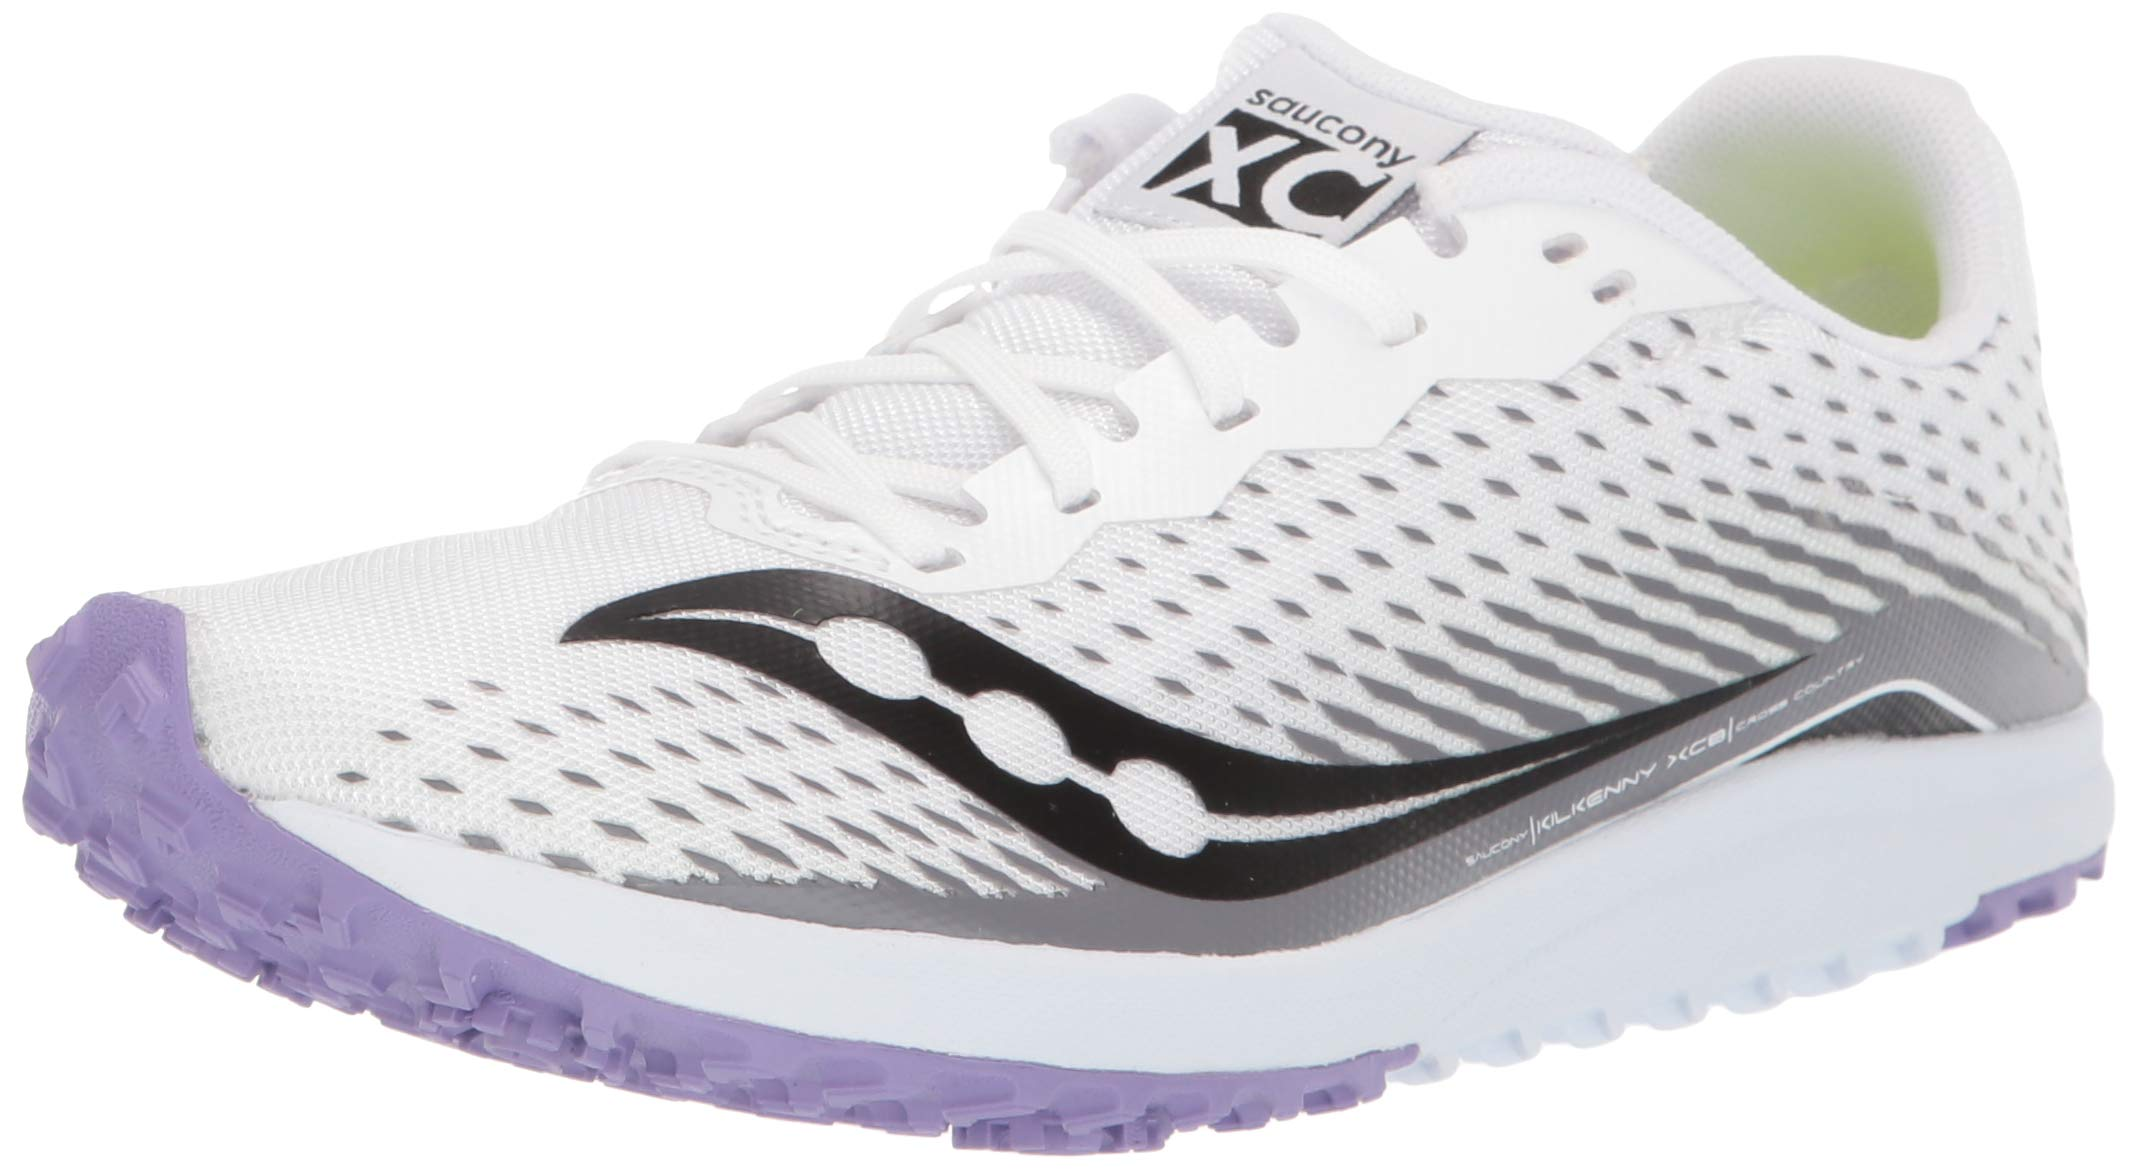 Saucony Women's Kilkenny XC8 Flat Track Shoe, White/Purple, 5 Medium US by Saucony